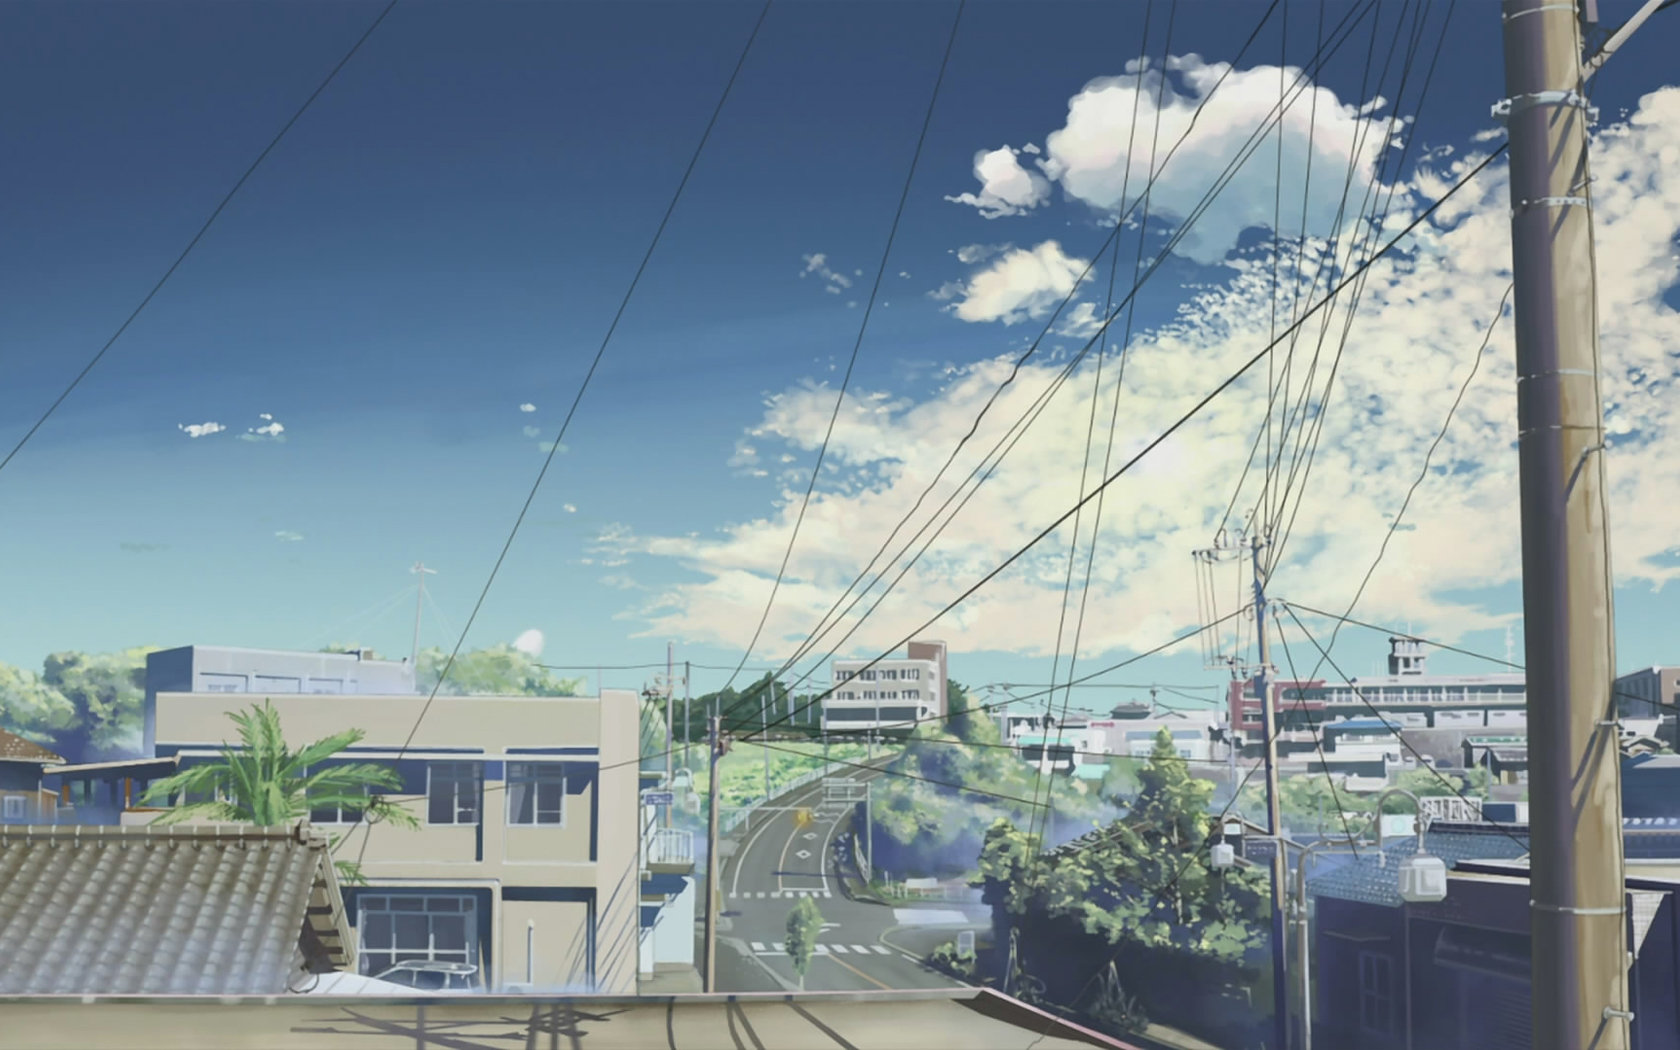 Scenery Anime Wallpapers Hd For Desktop Backgrounds